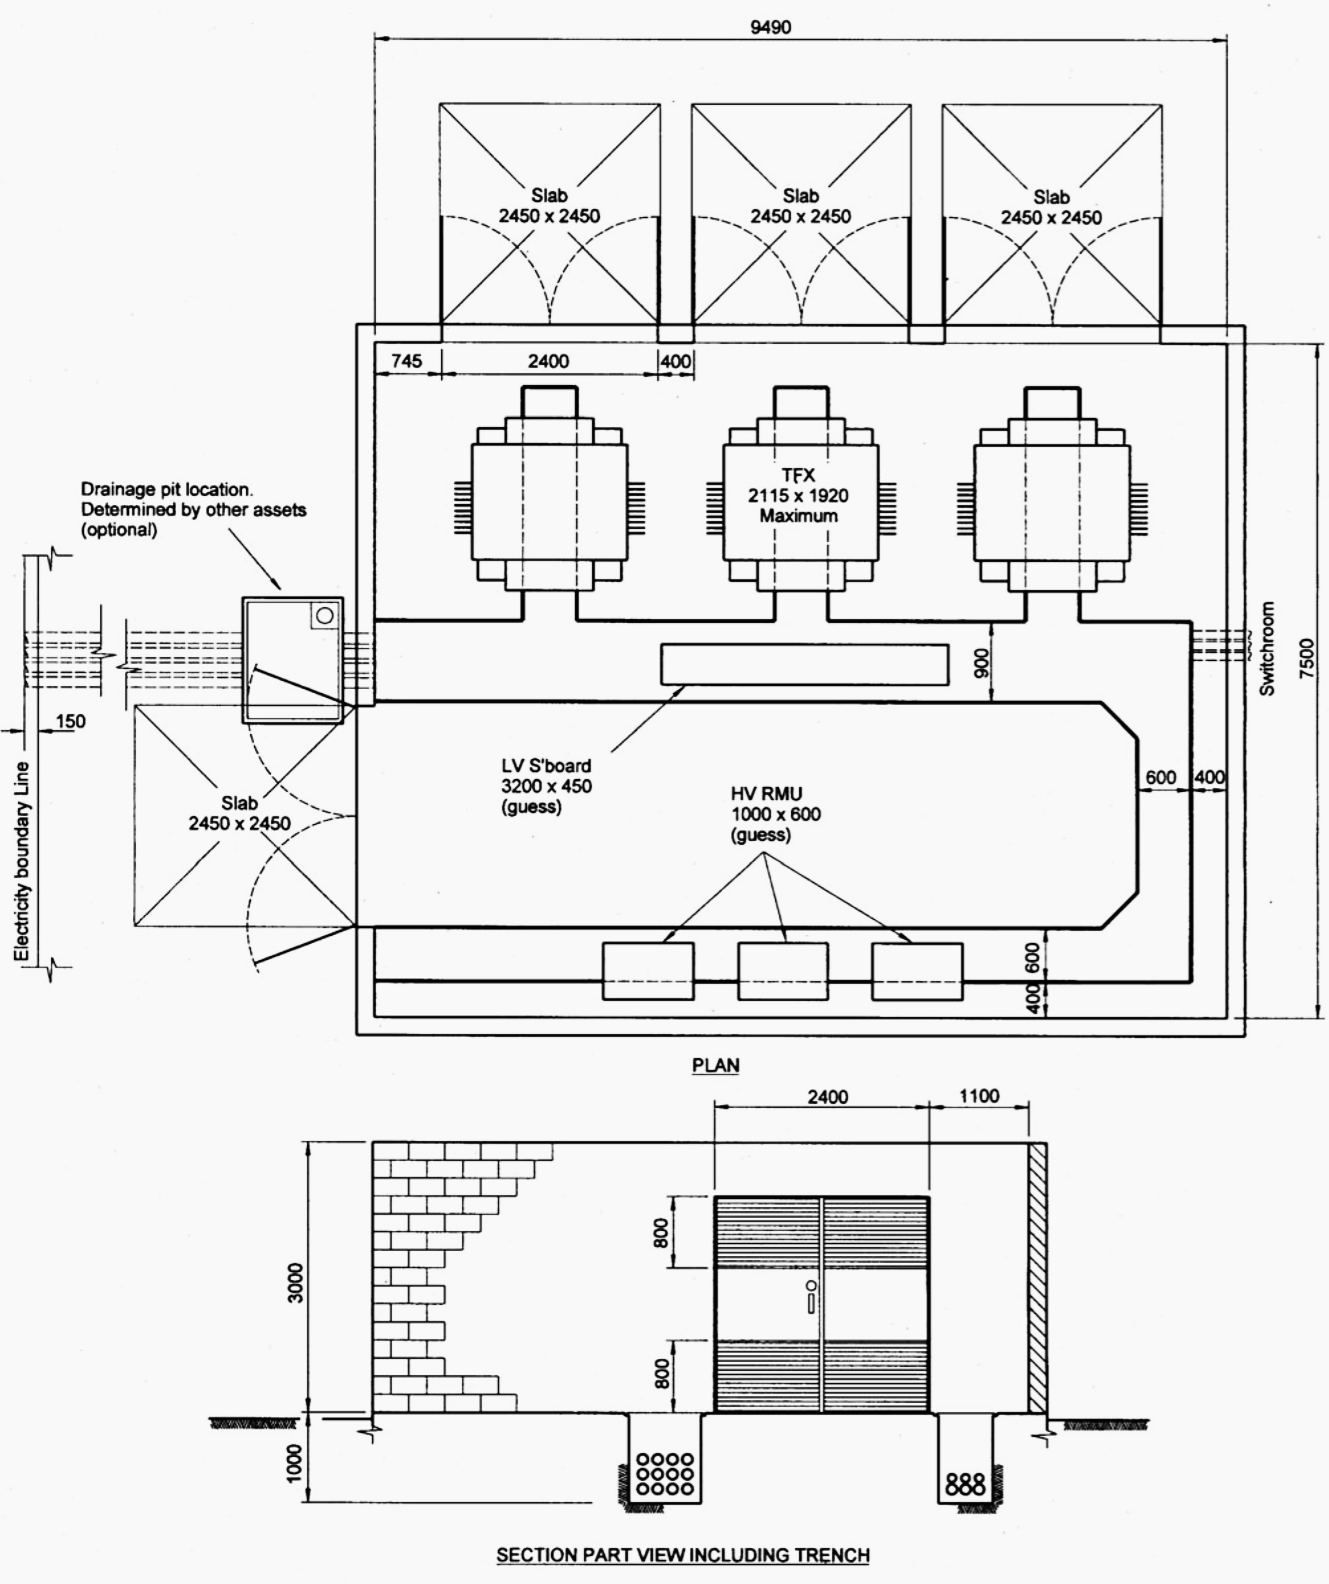 Indoor Distribution Substation Layout With 3 Transformers Emf Containment And More Than 1